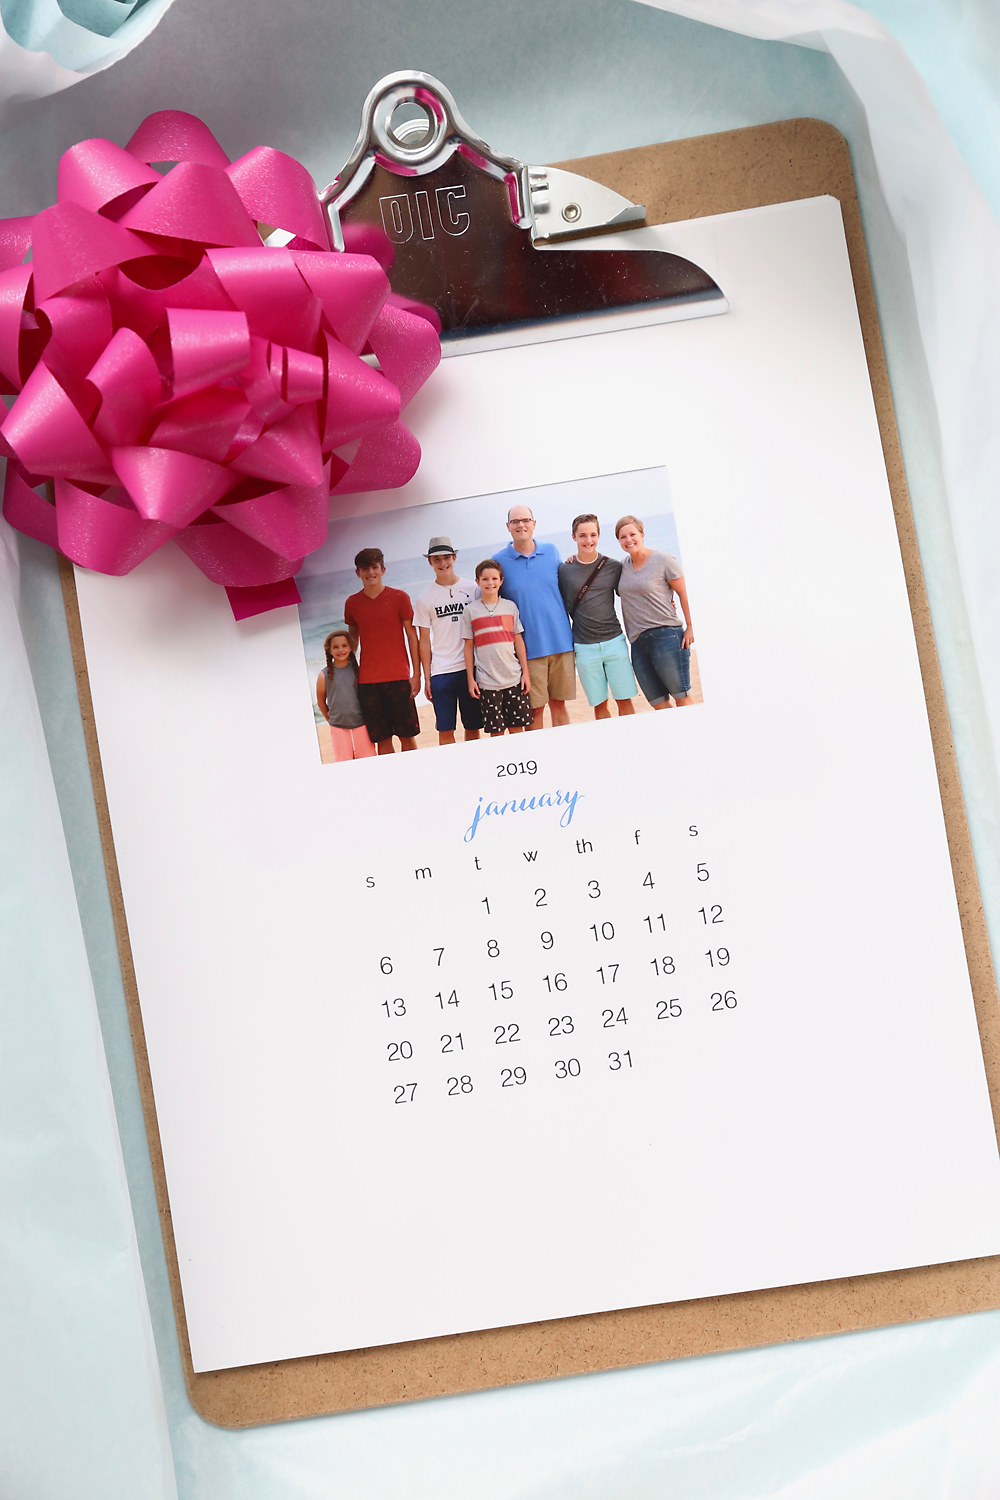 Photo calendar with a bow in a gift box